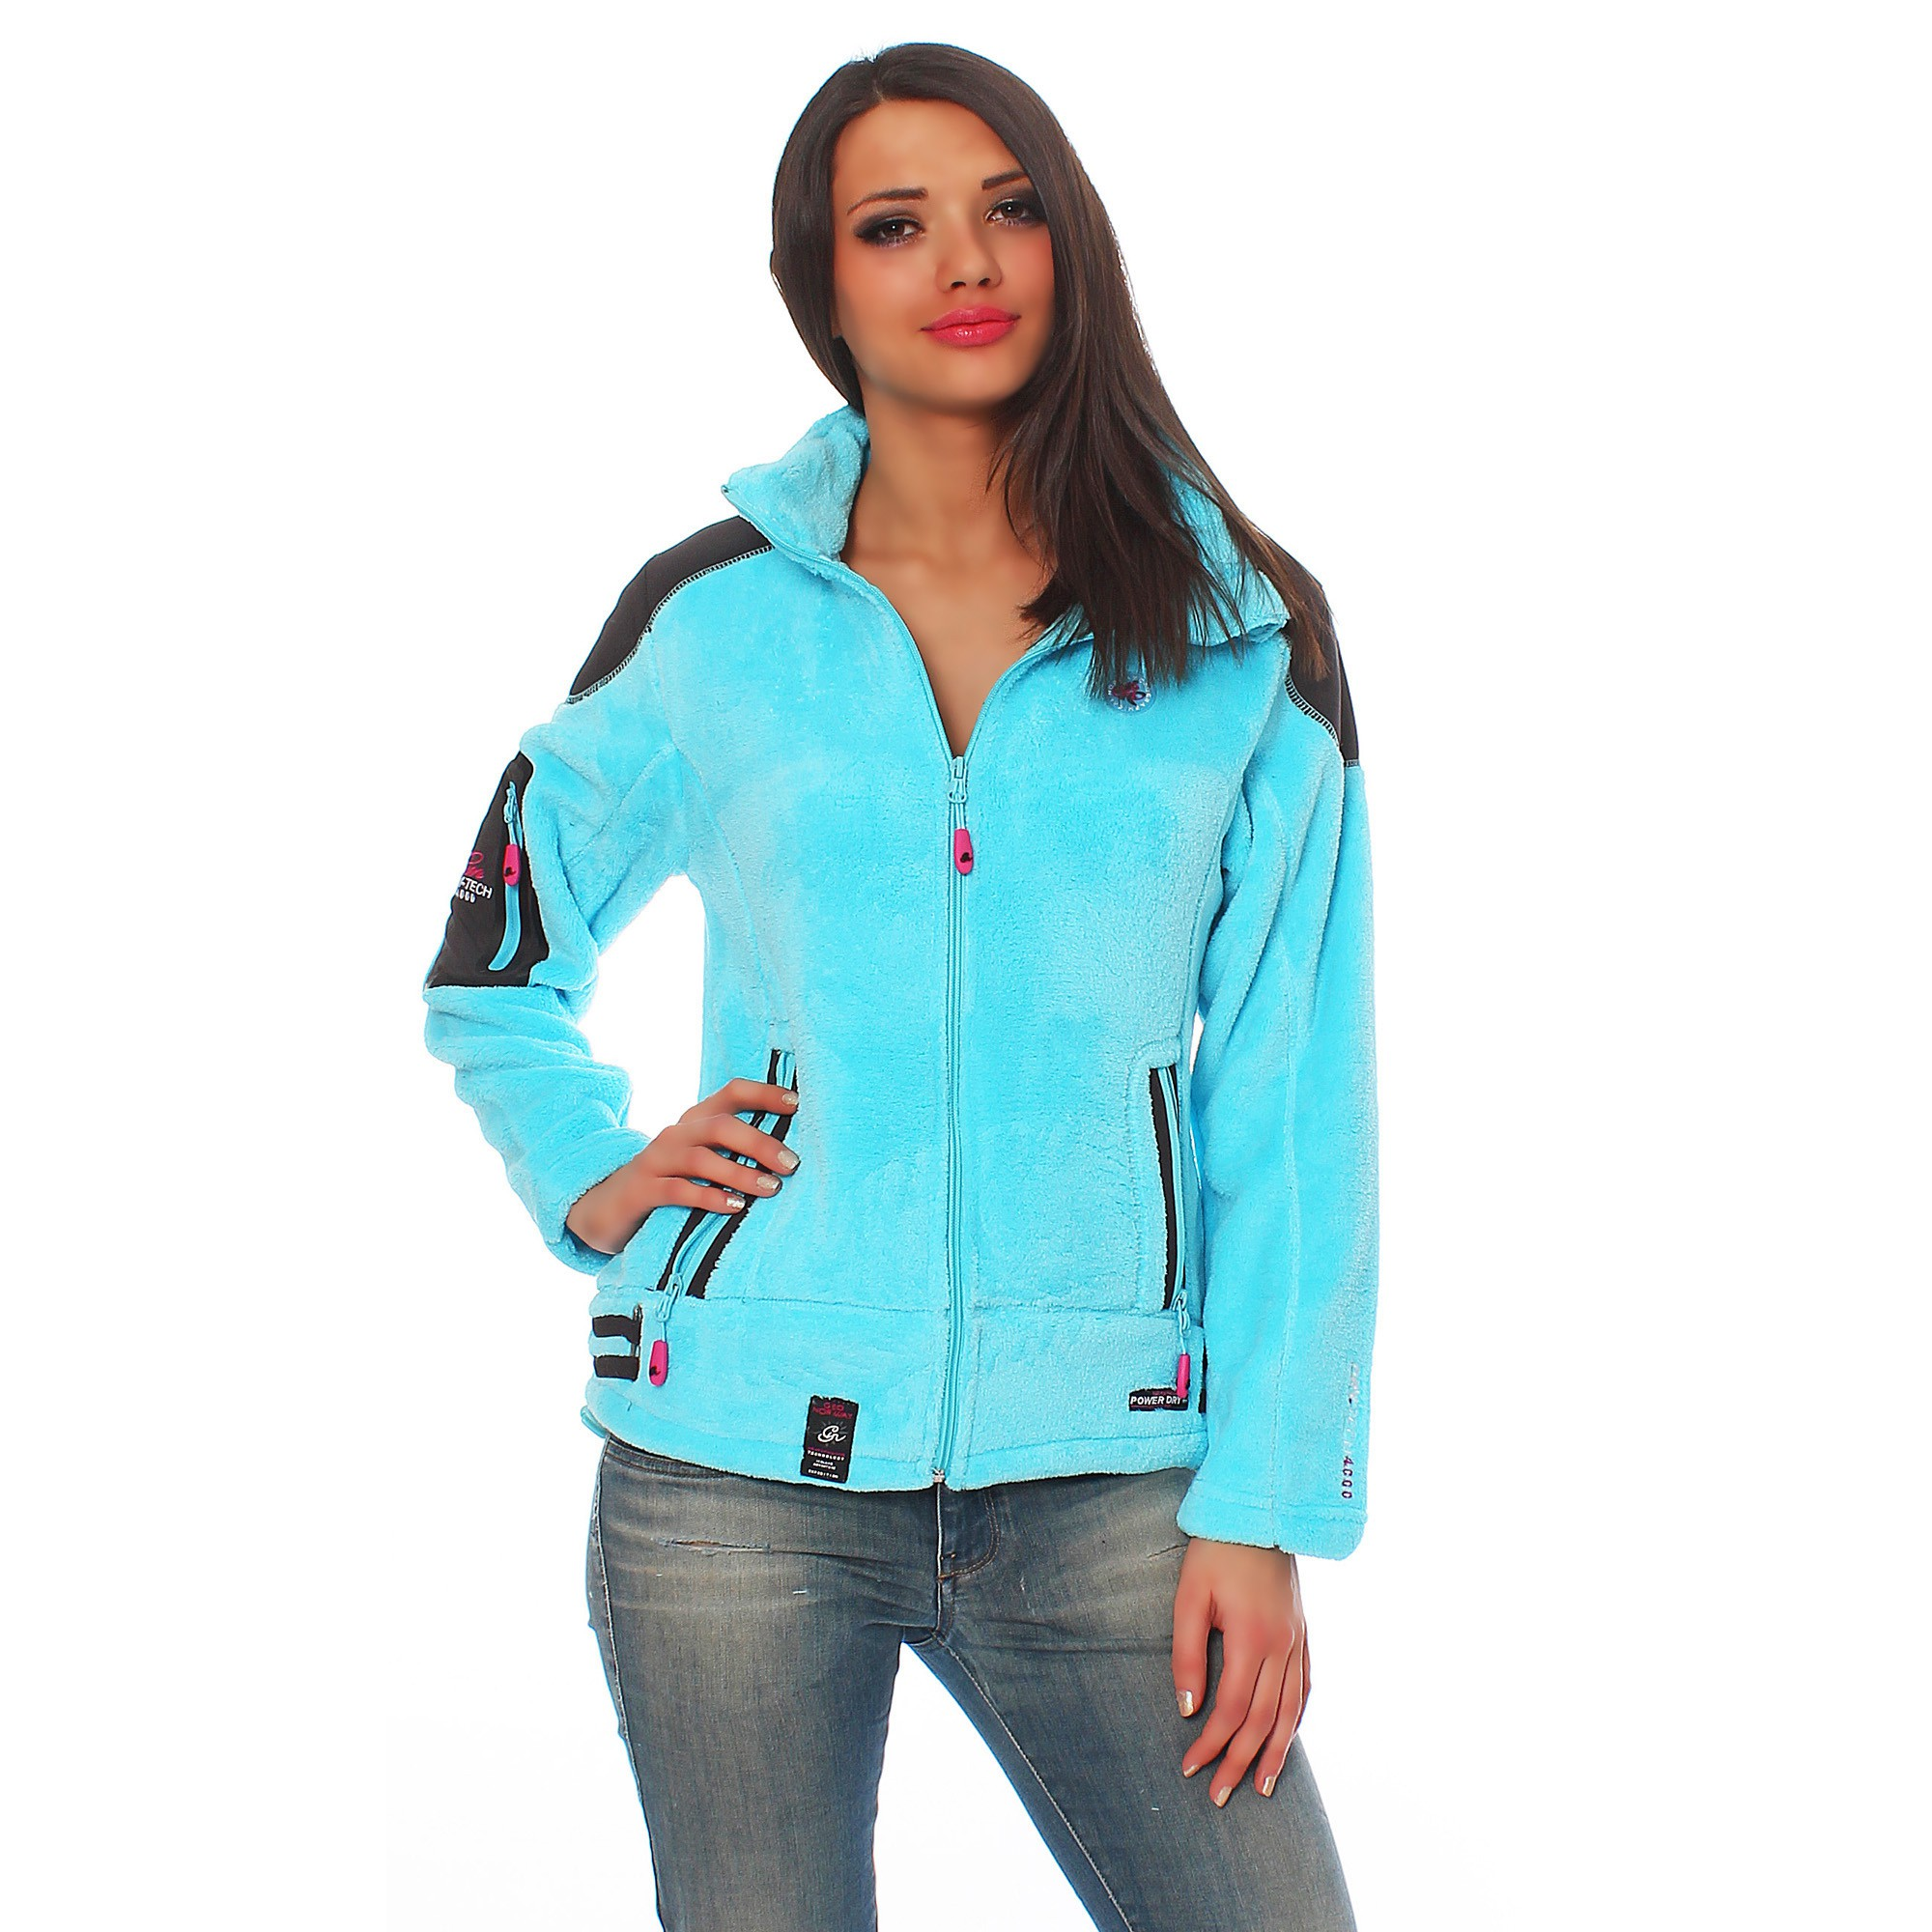 geographical norway topaze damen fleecejacke fleece jacke. Black Bedroom Furniture Sets. Home Design Ideas